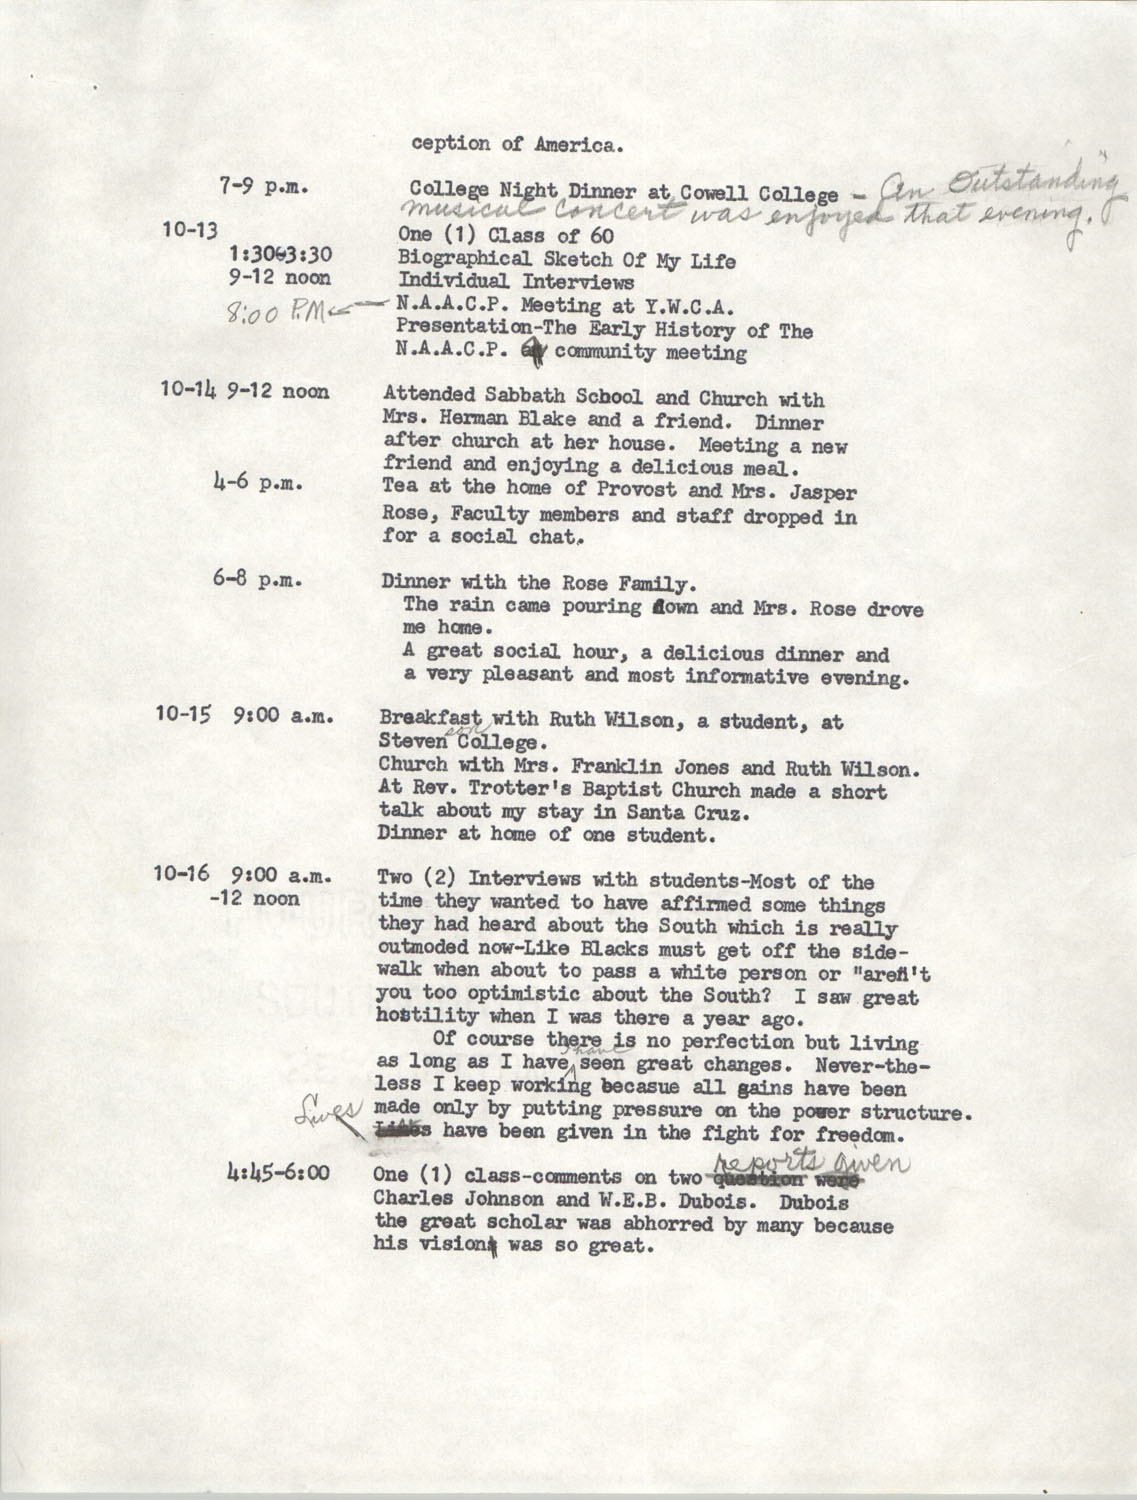 Schedule for Sojourn in Santa Cruz, College Seven, October 8 to November 1, 1972, Page 2